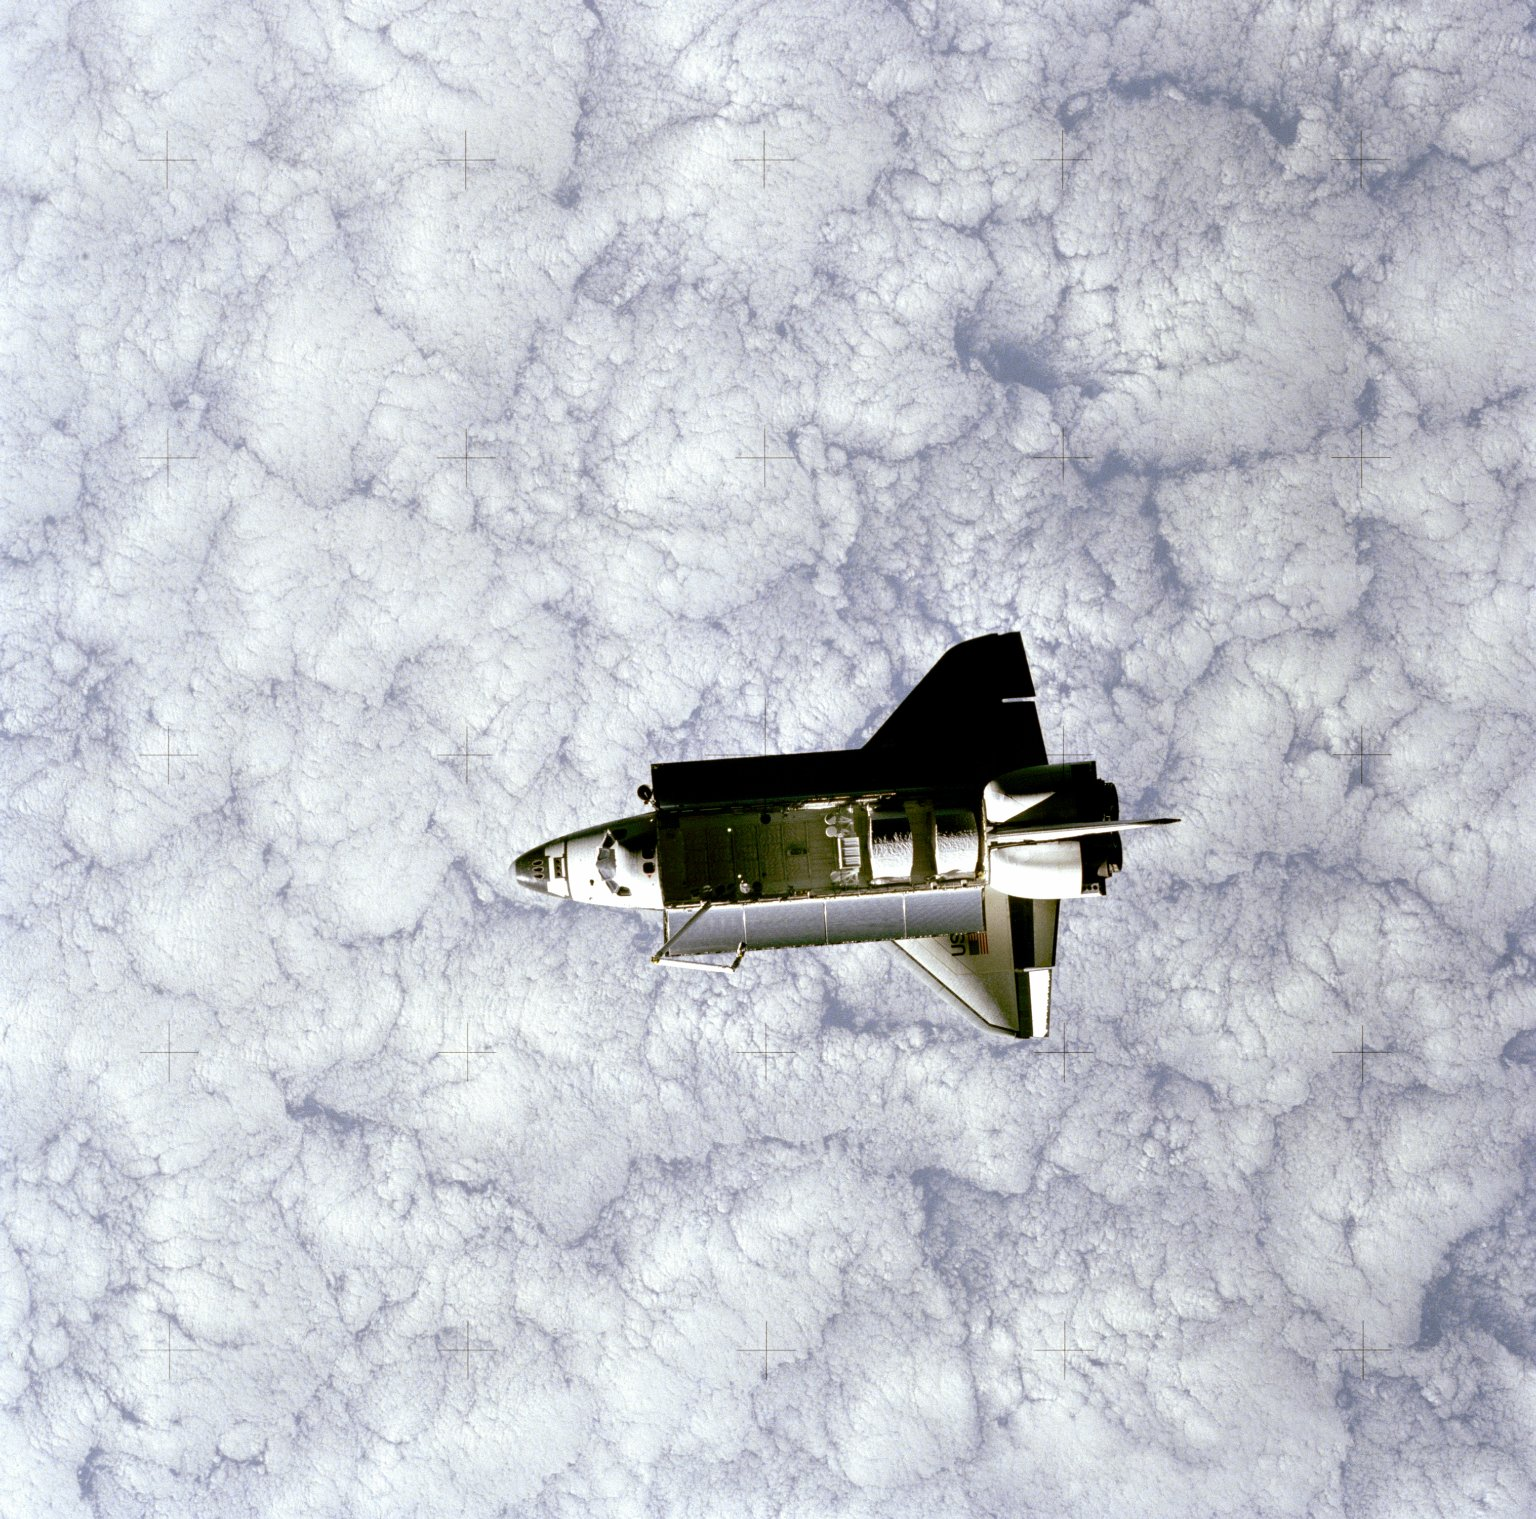 Challenger as seen from SPAS